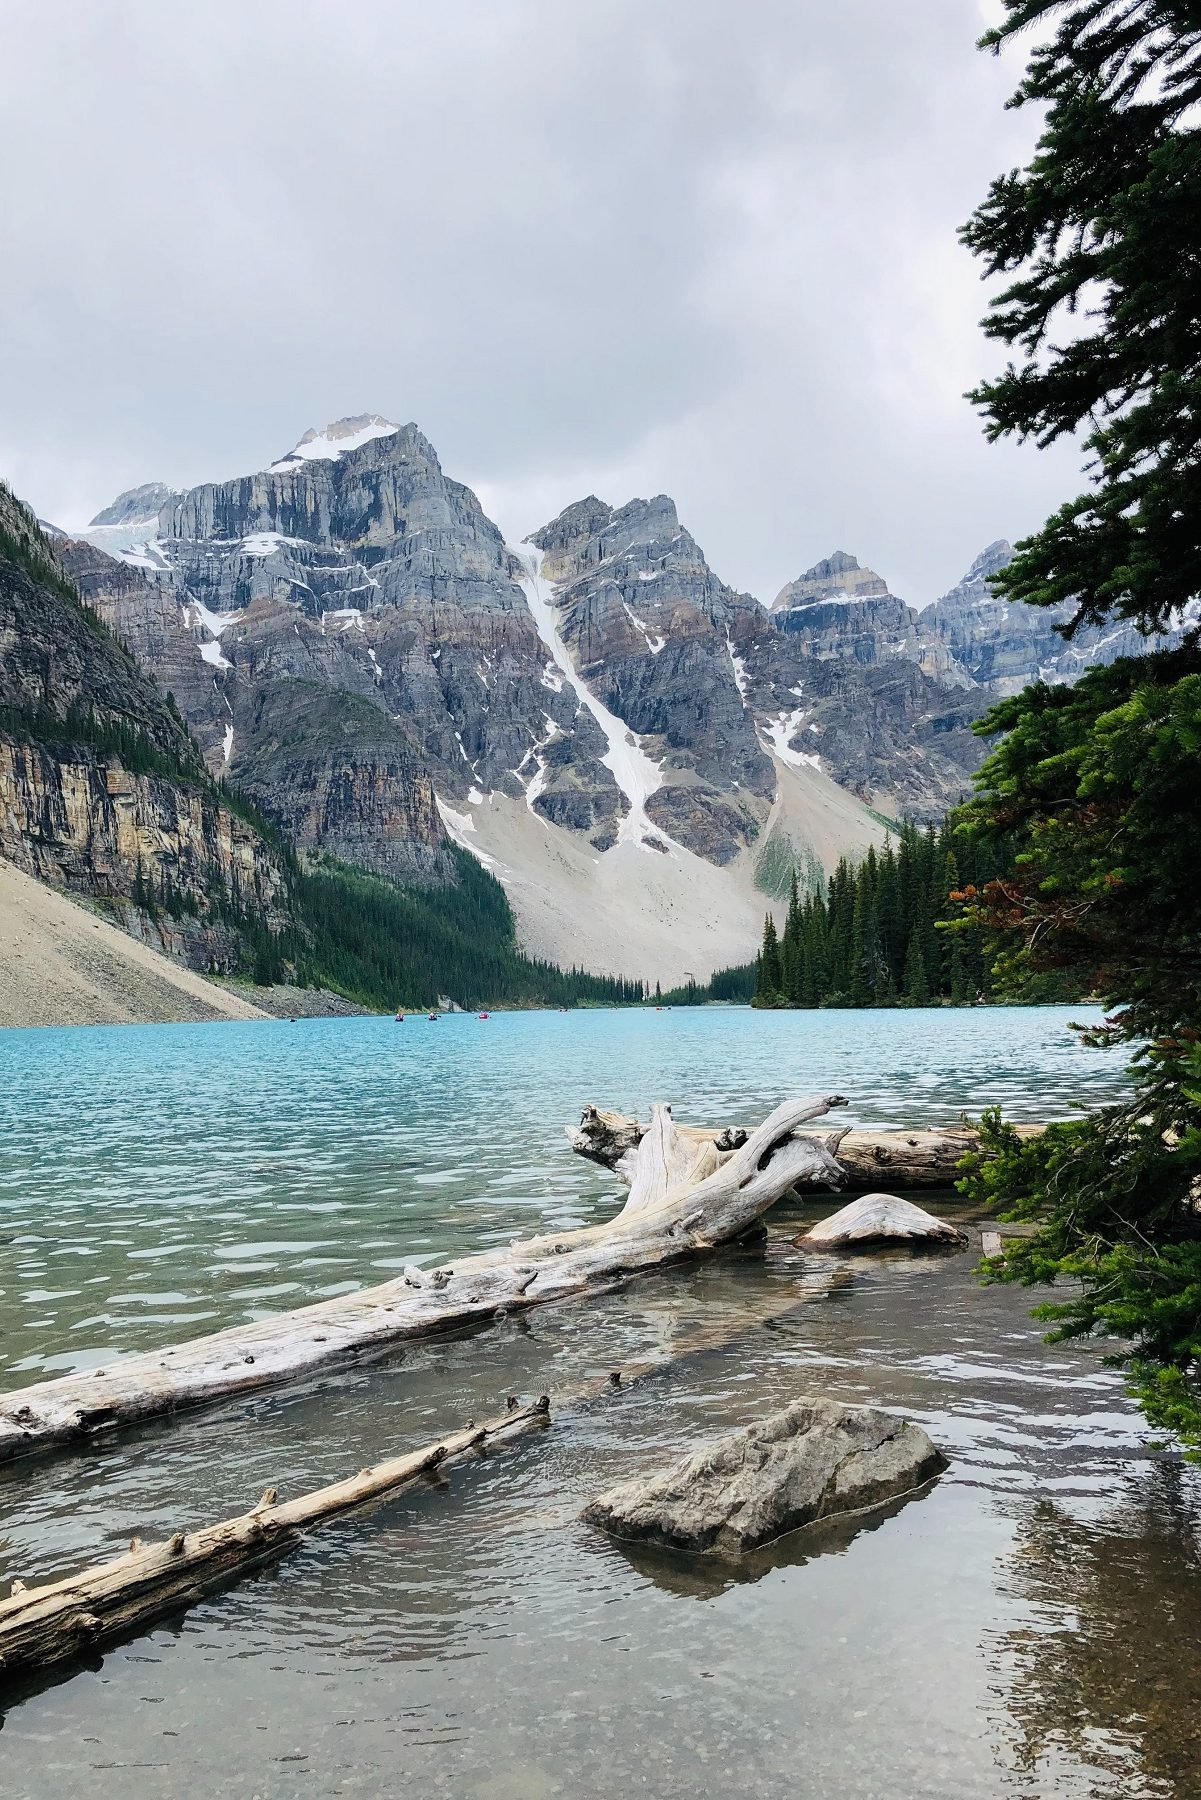 Lake Louise, Alberta - From Tofino to Banff: a 14-Day Itinerary in Western Canada